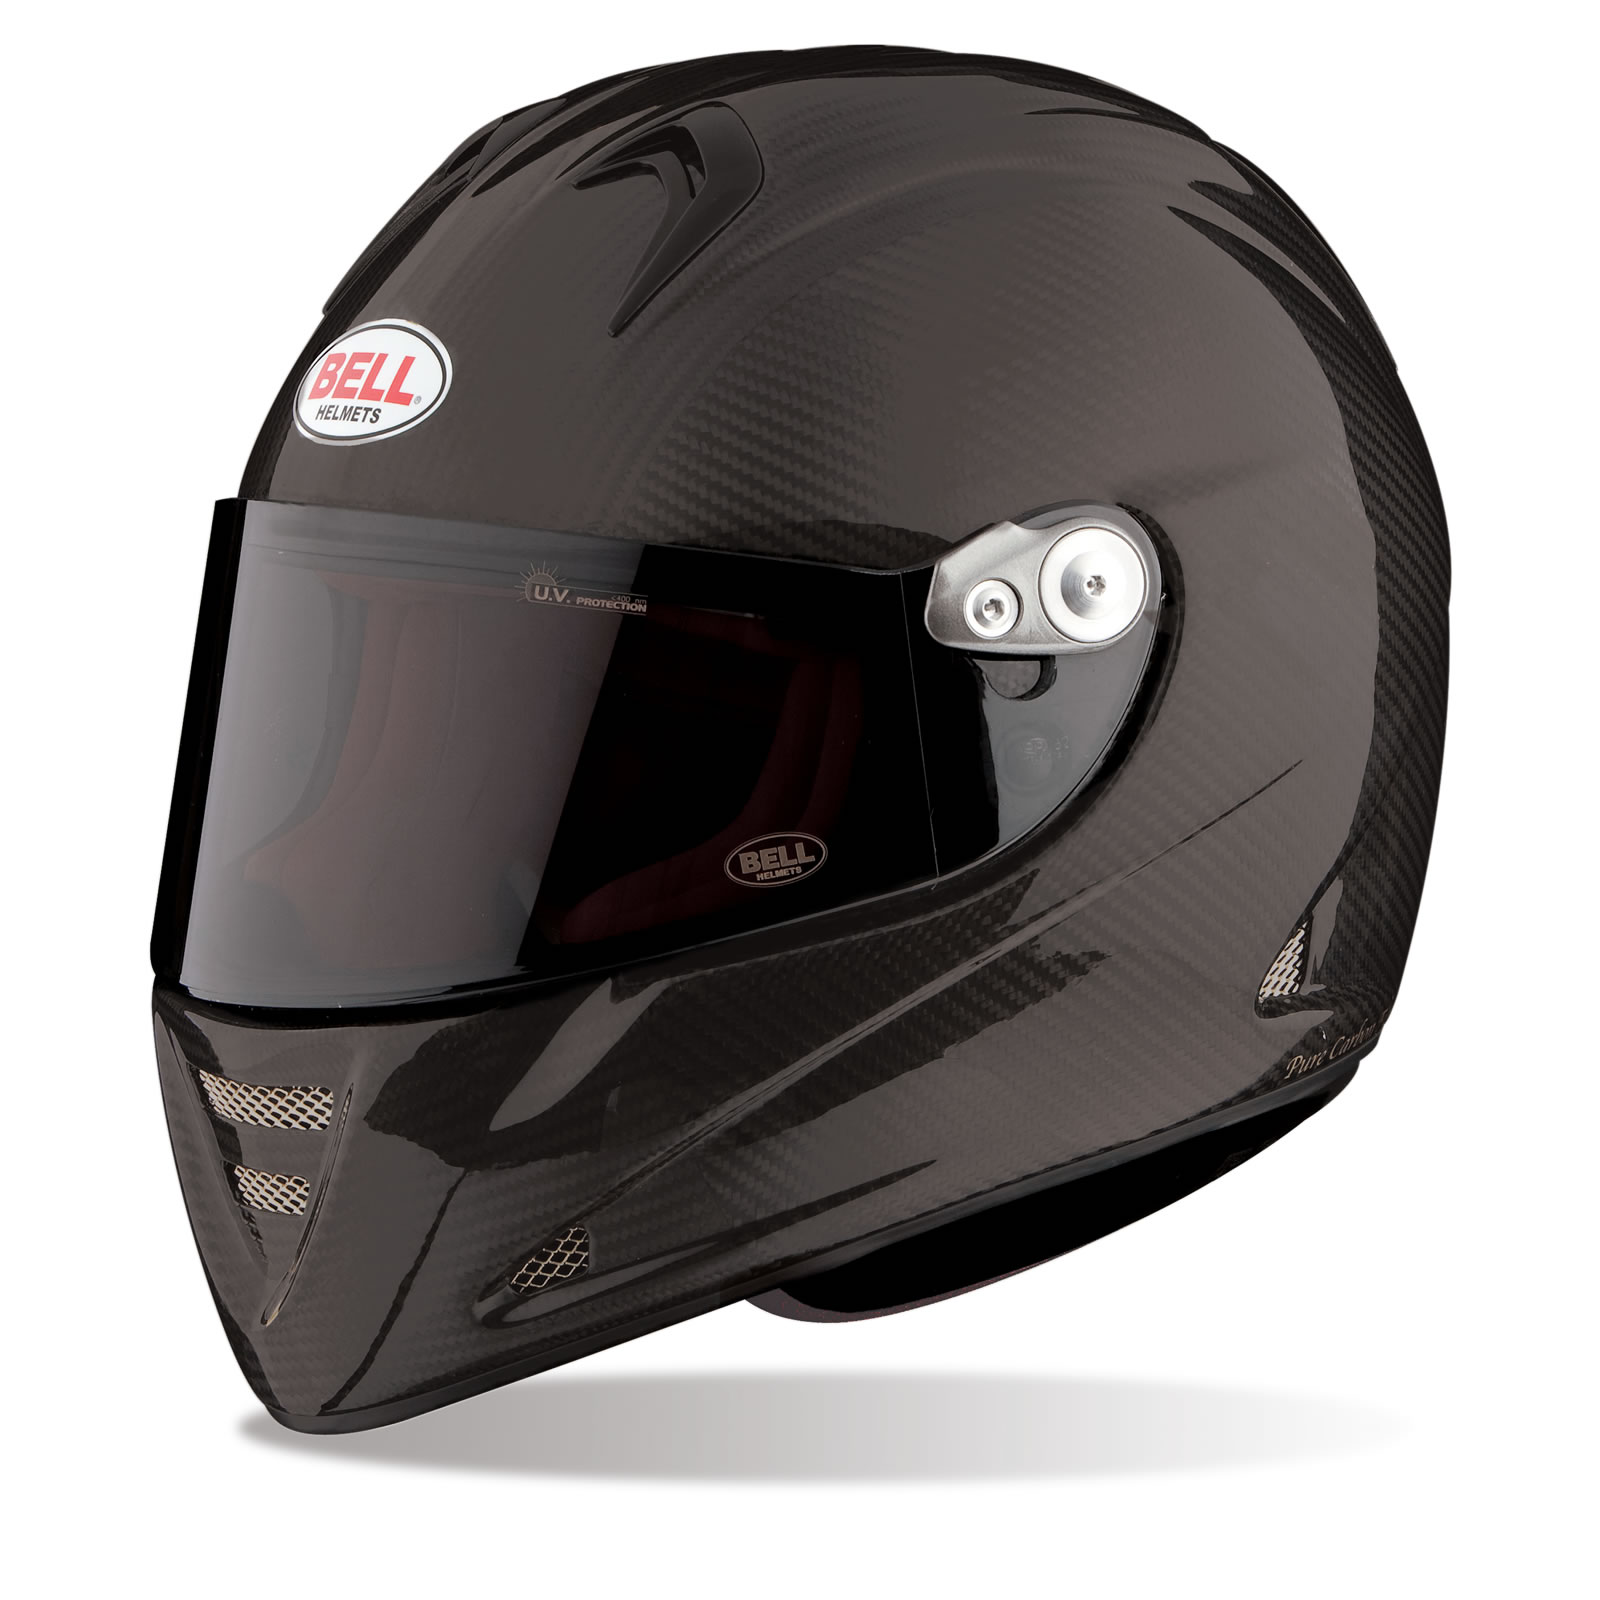 bell m5x solid matte carbon motorcycle helmet full face. Black Bedroom Furniture Sets. Home Design Ideas